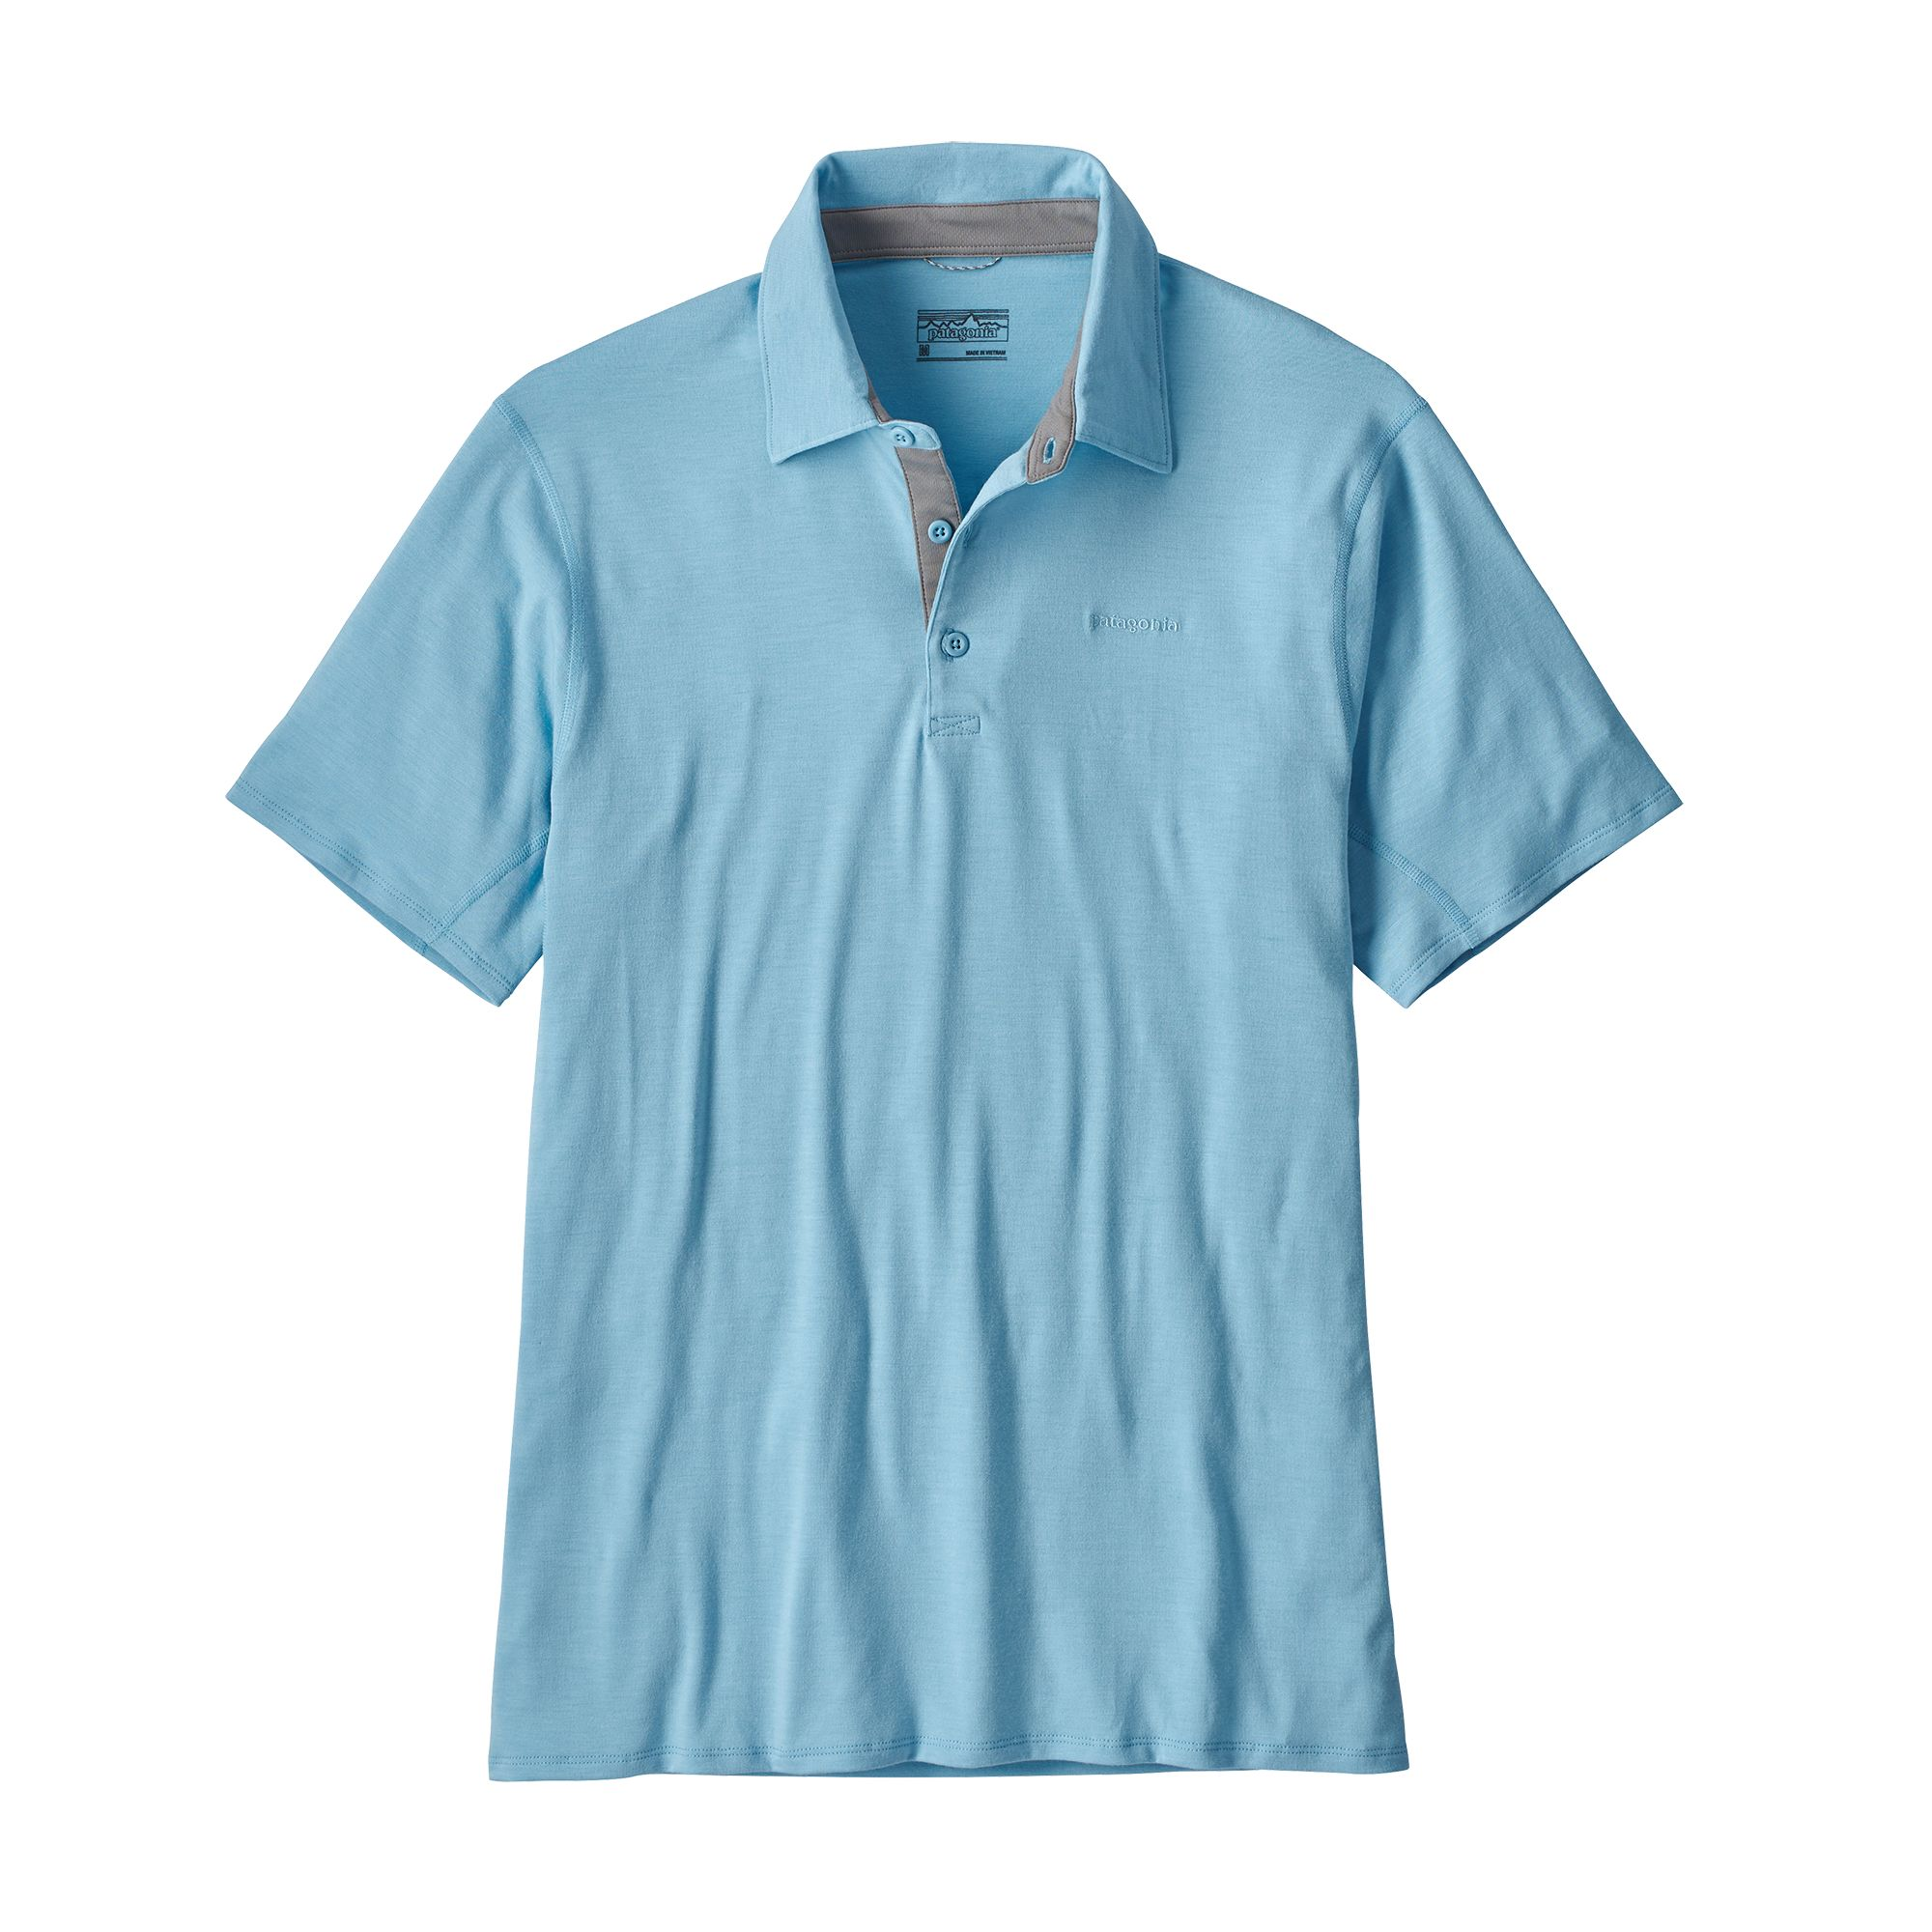 Patagonia M's Cactusflats Polo